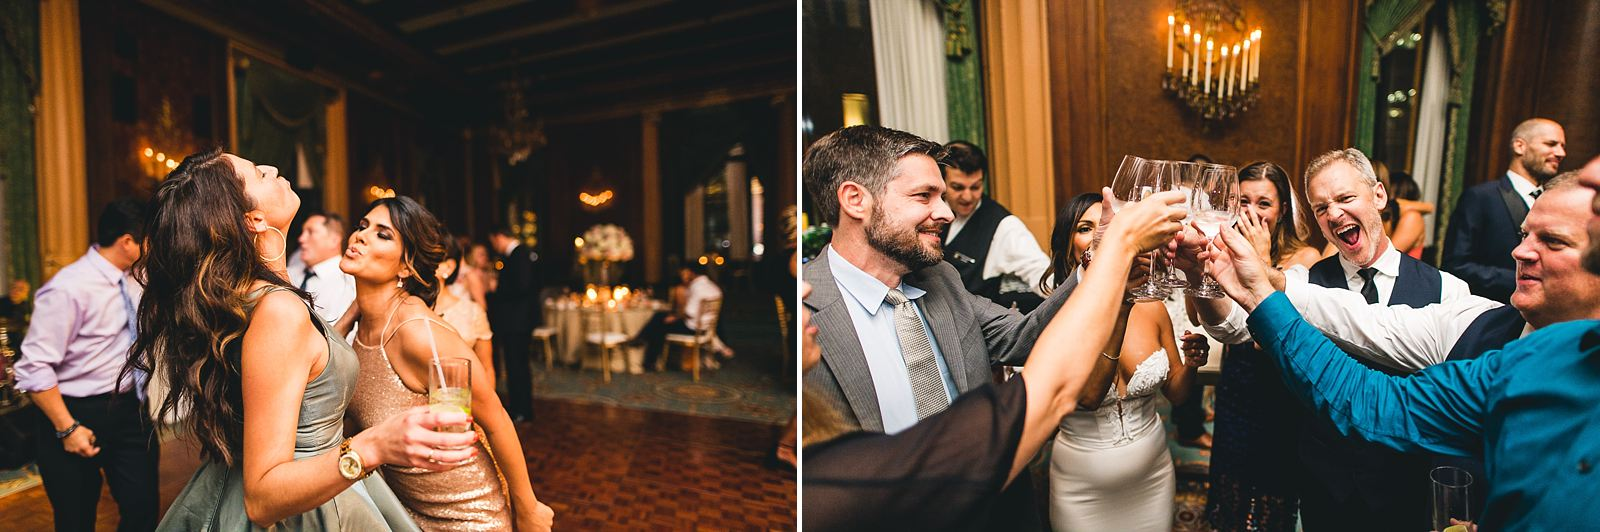 55 best wedding photos in chicago - Intercontinental Chicago Hotel Wedding // Lili + Danny